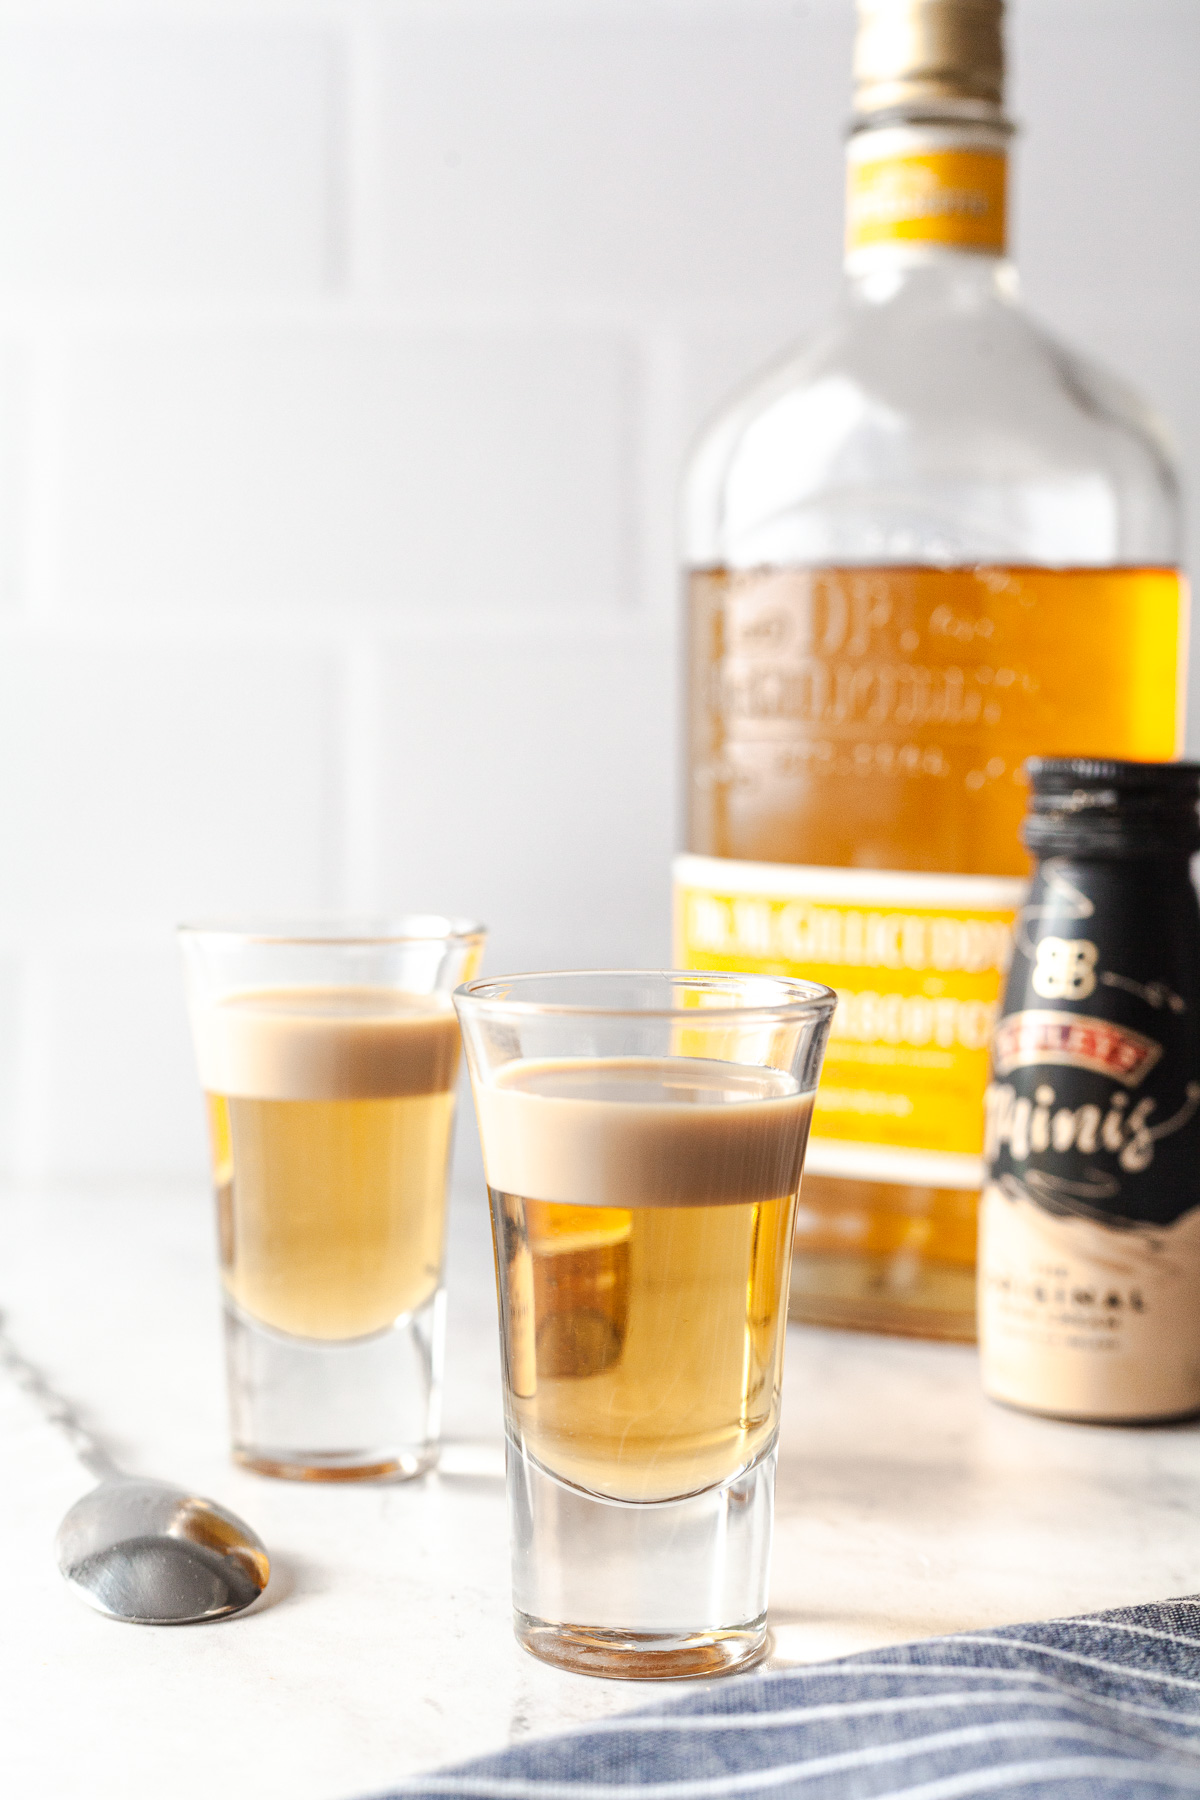 image of ingredients of a buttery nipple shot